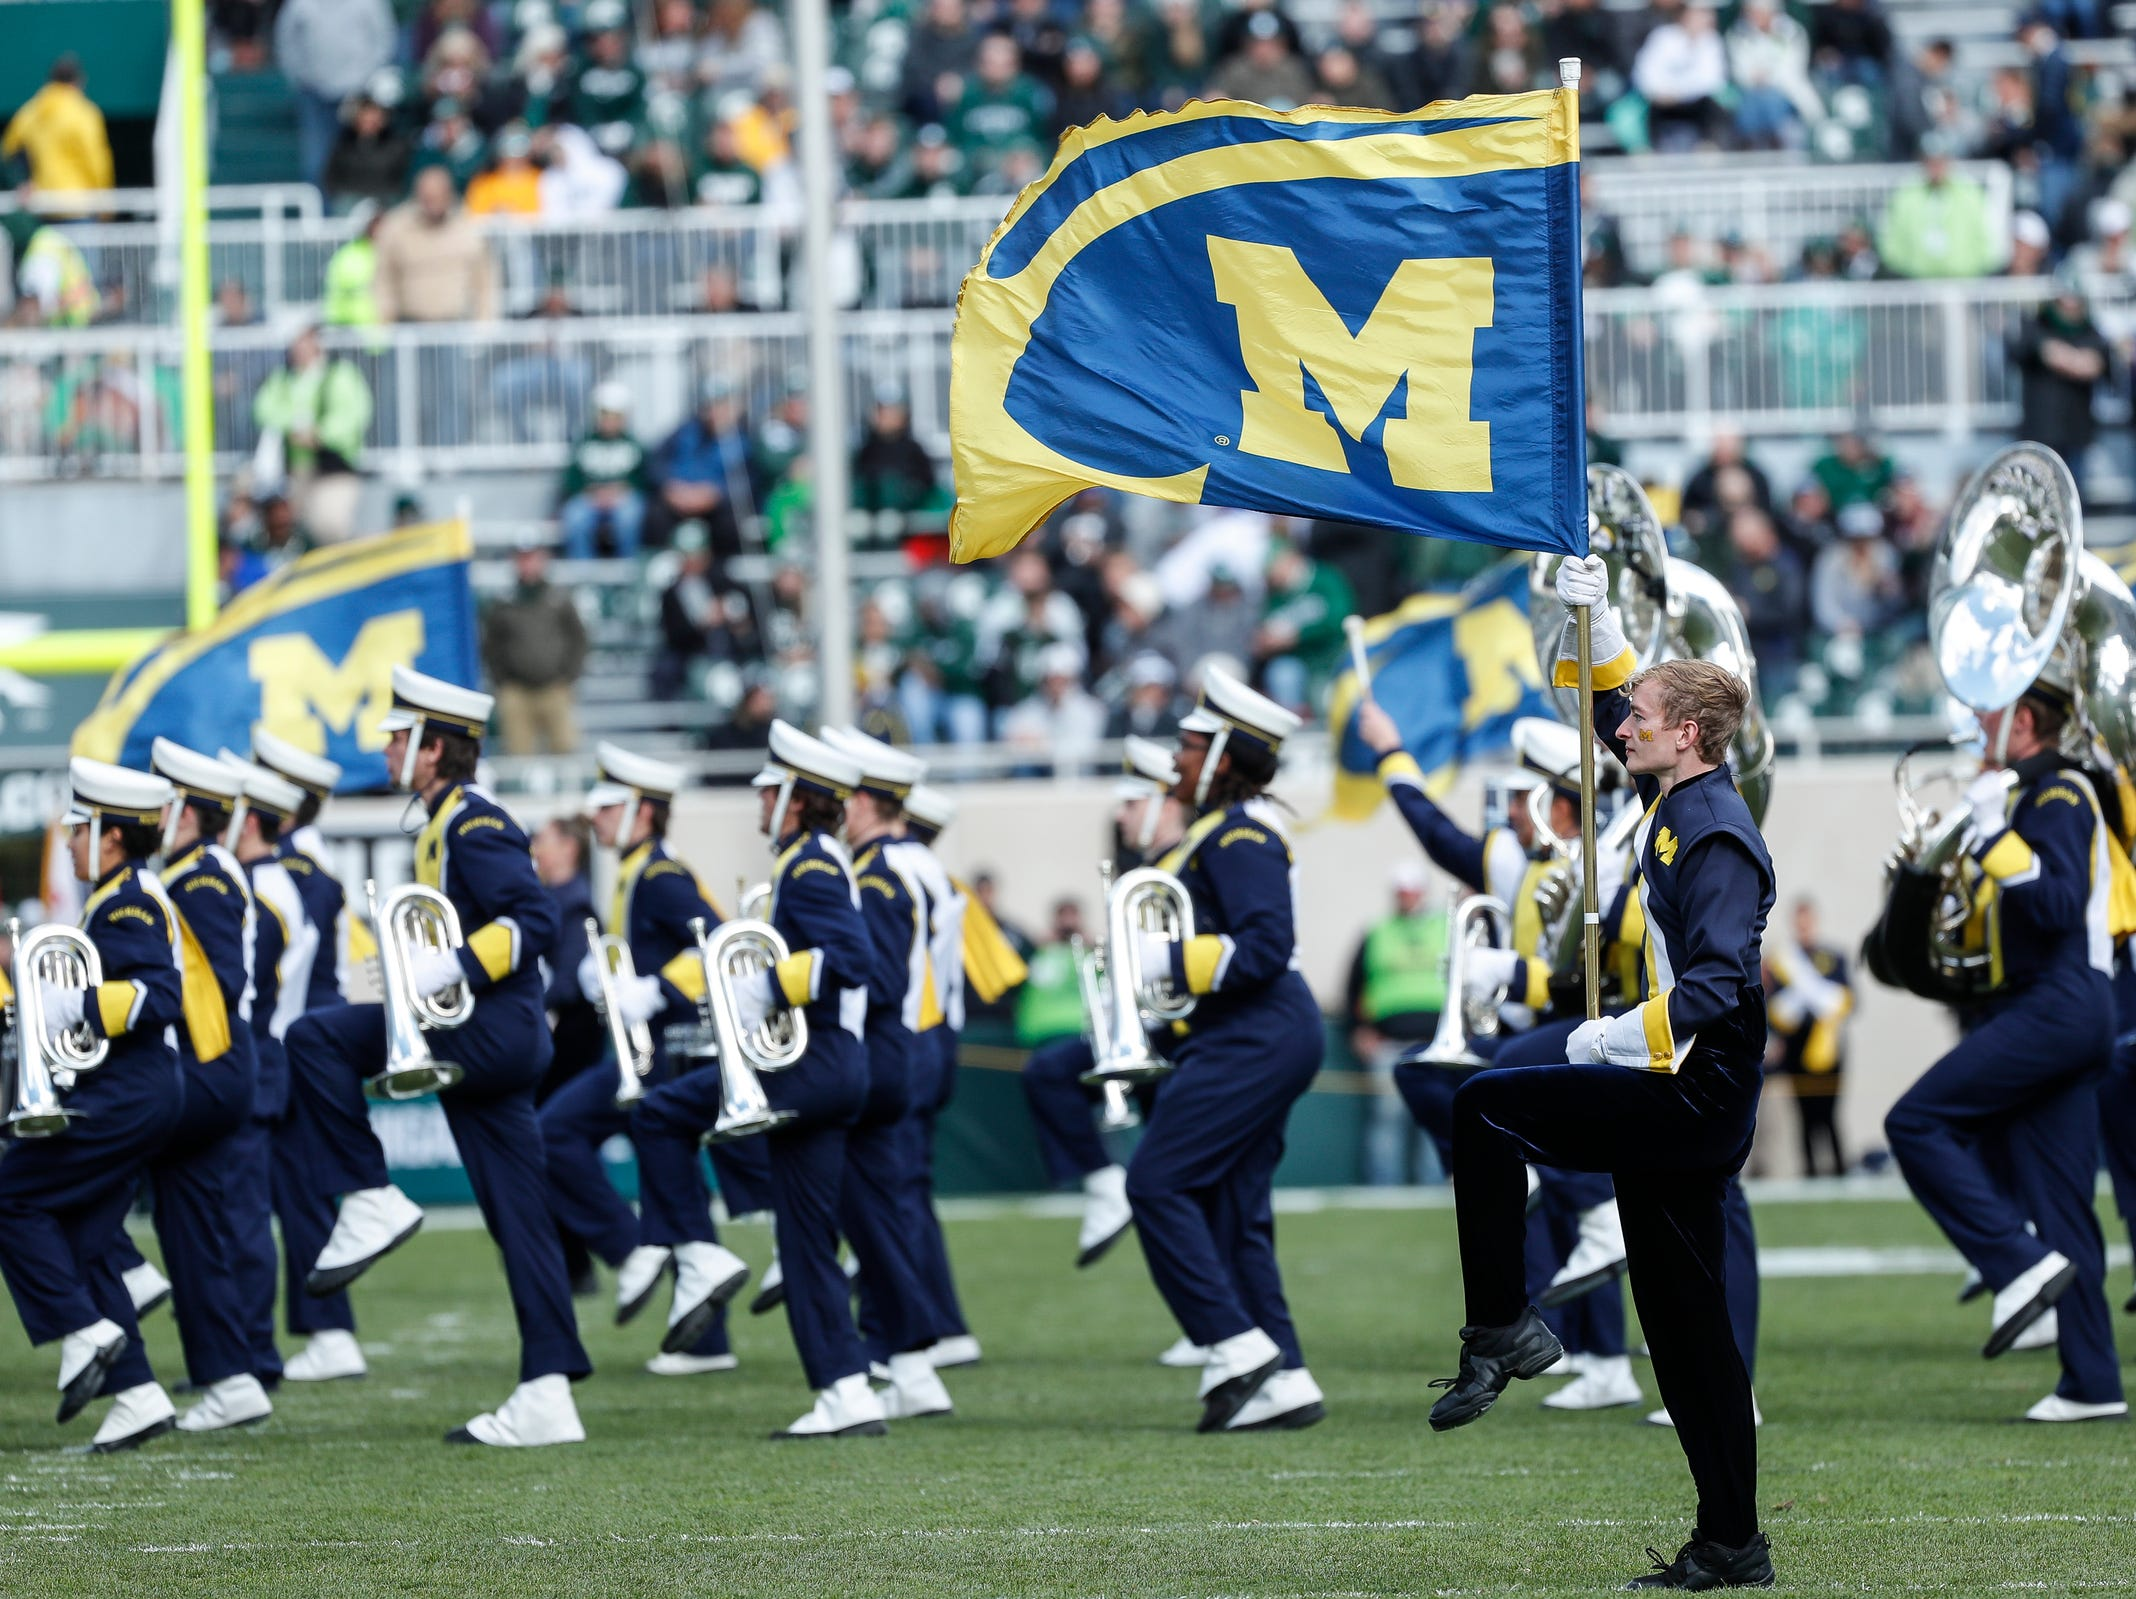 The Michigan Marching Band performs before the Michigan State game at Spartan Stadium on Saturday, Oct. 20, 2018.